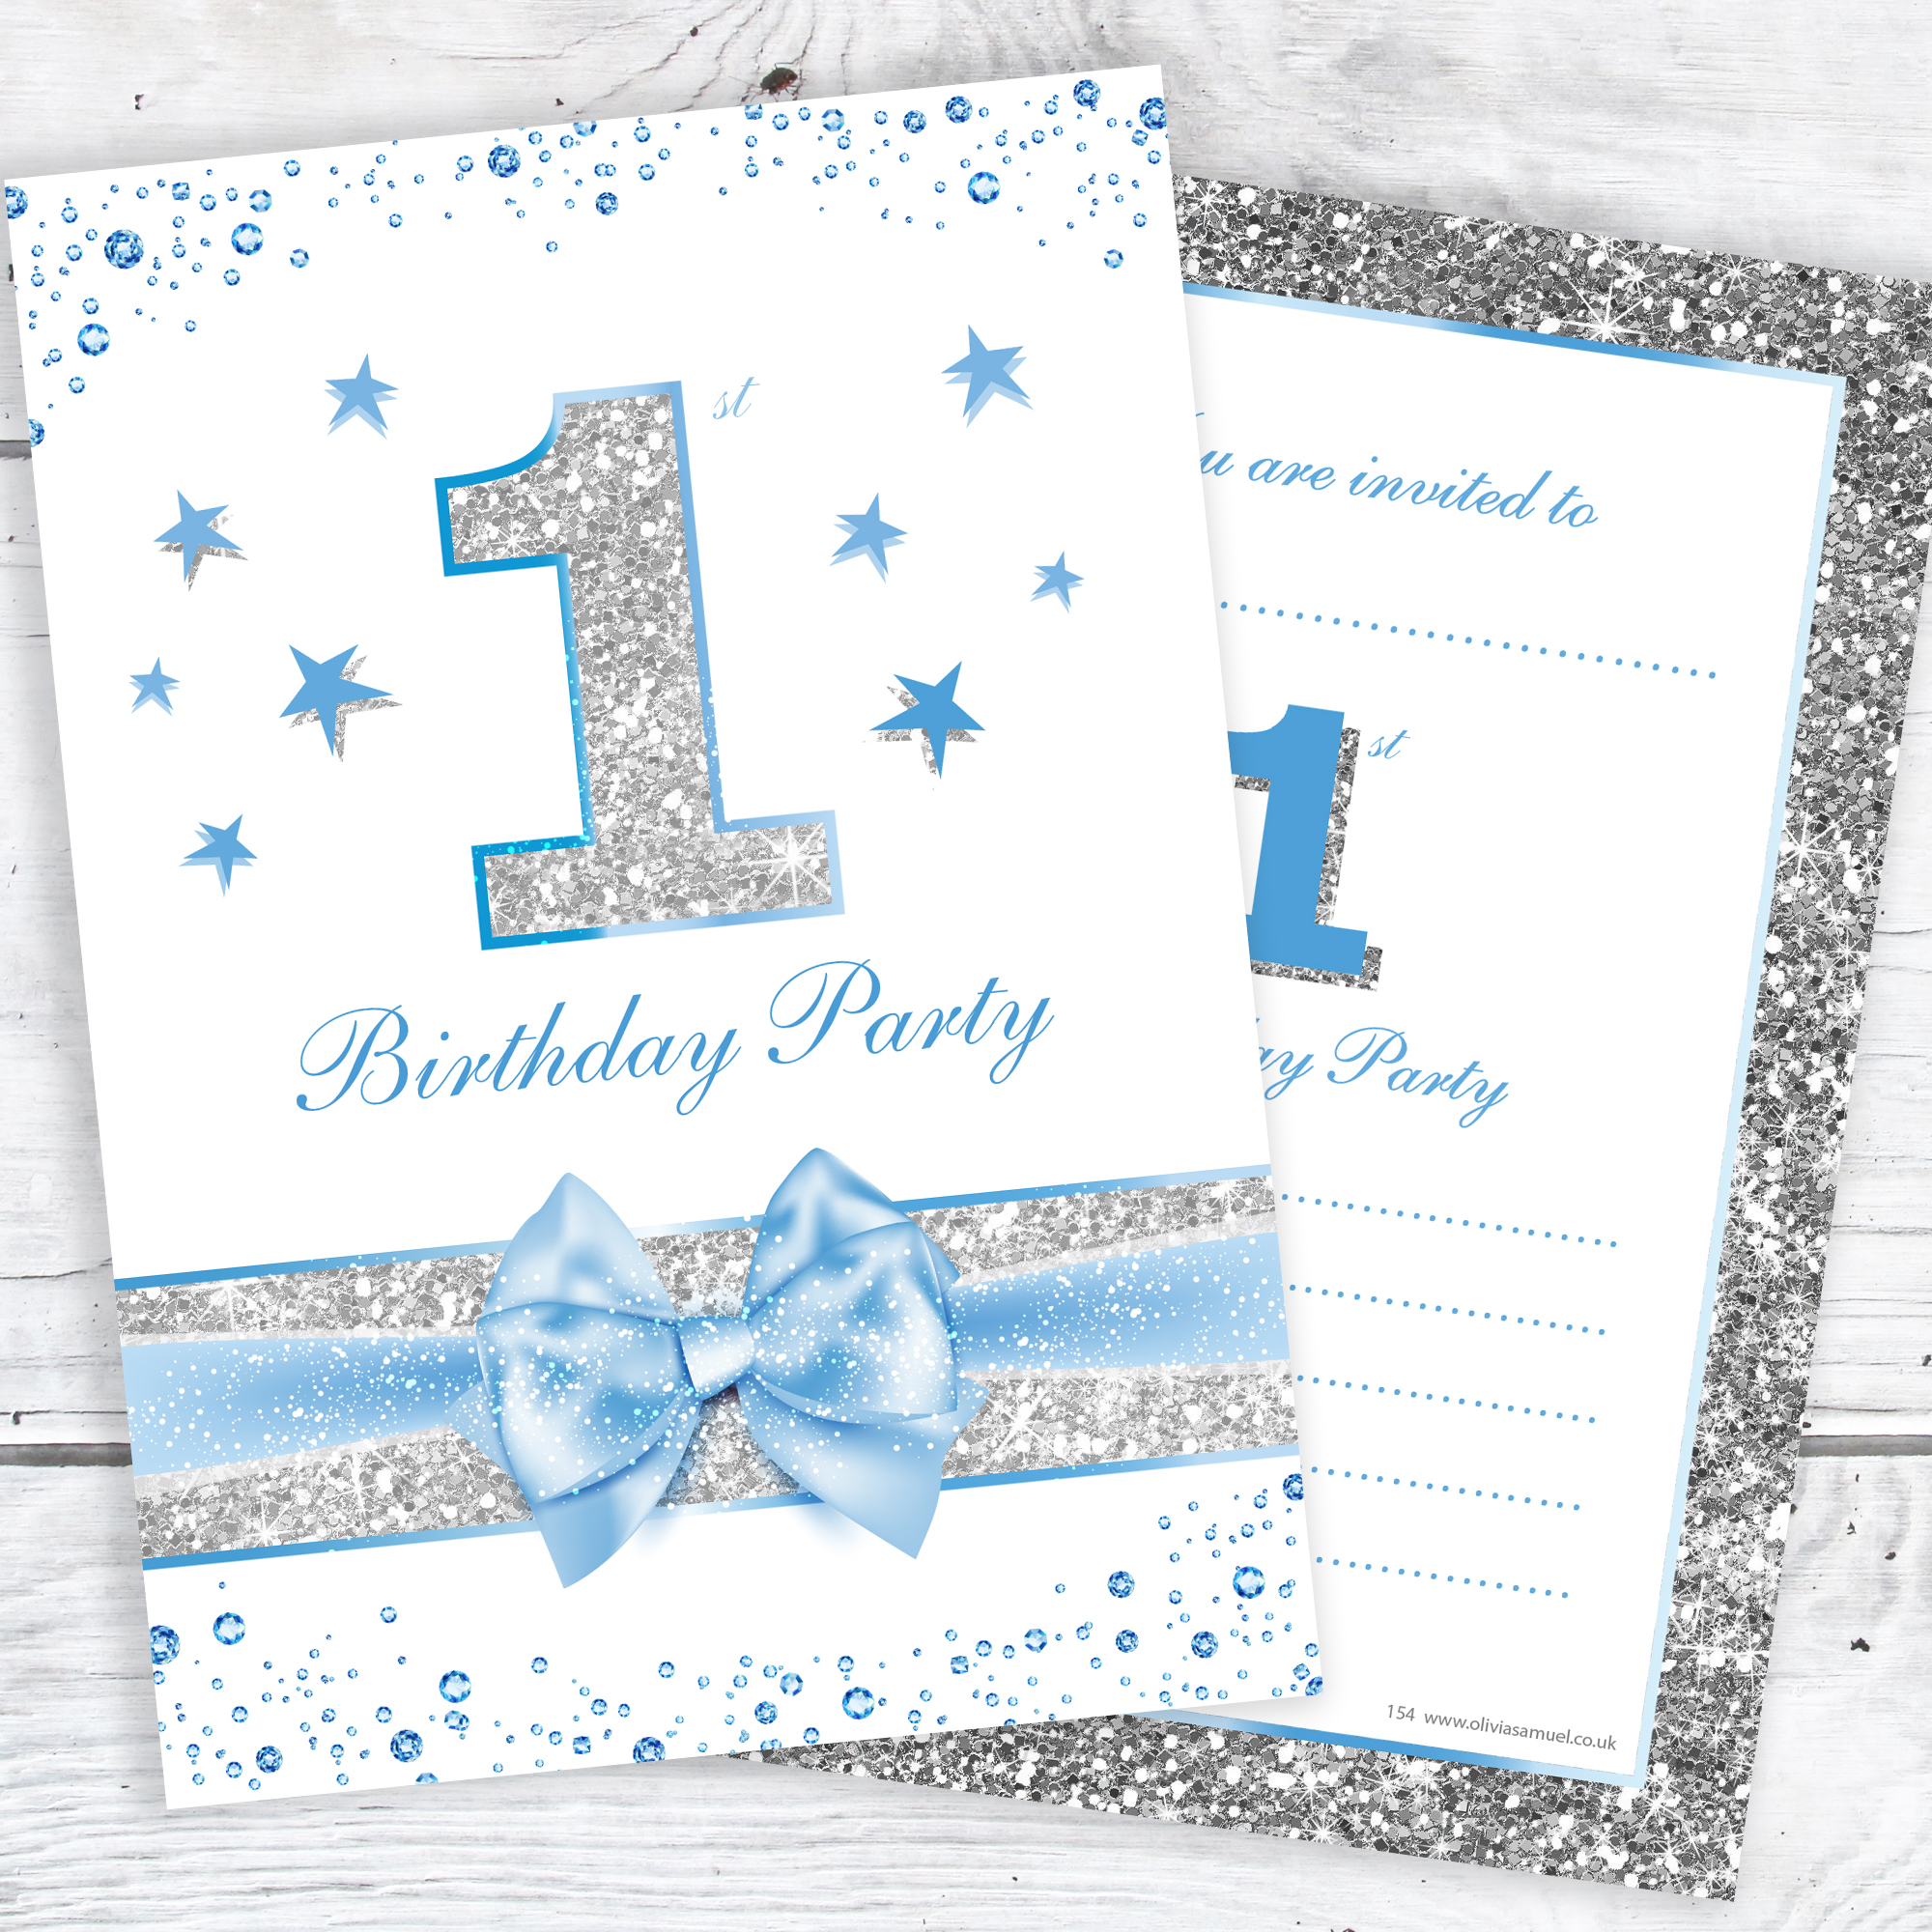 First Birthday Party Invitations – Baby Boy Blue Sparkly Design and ...